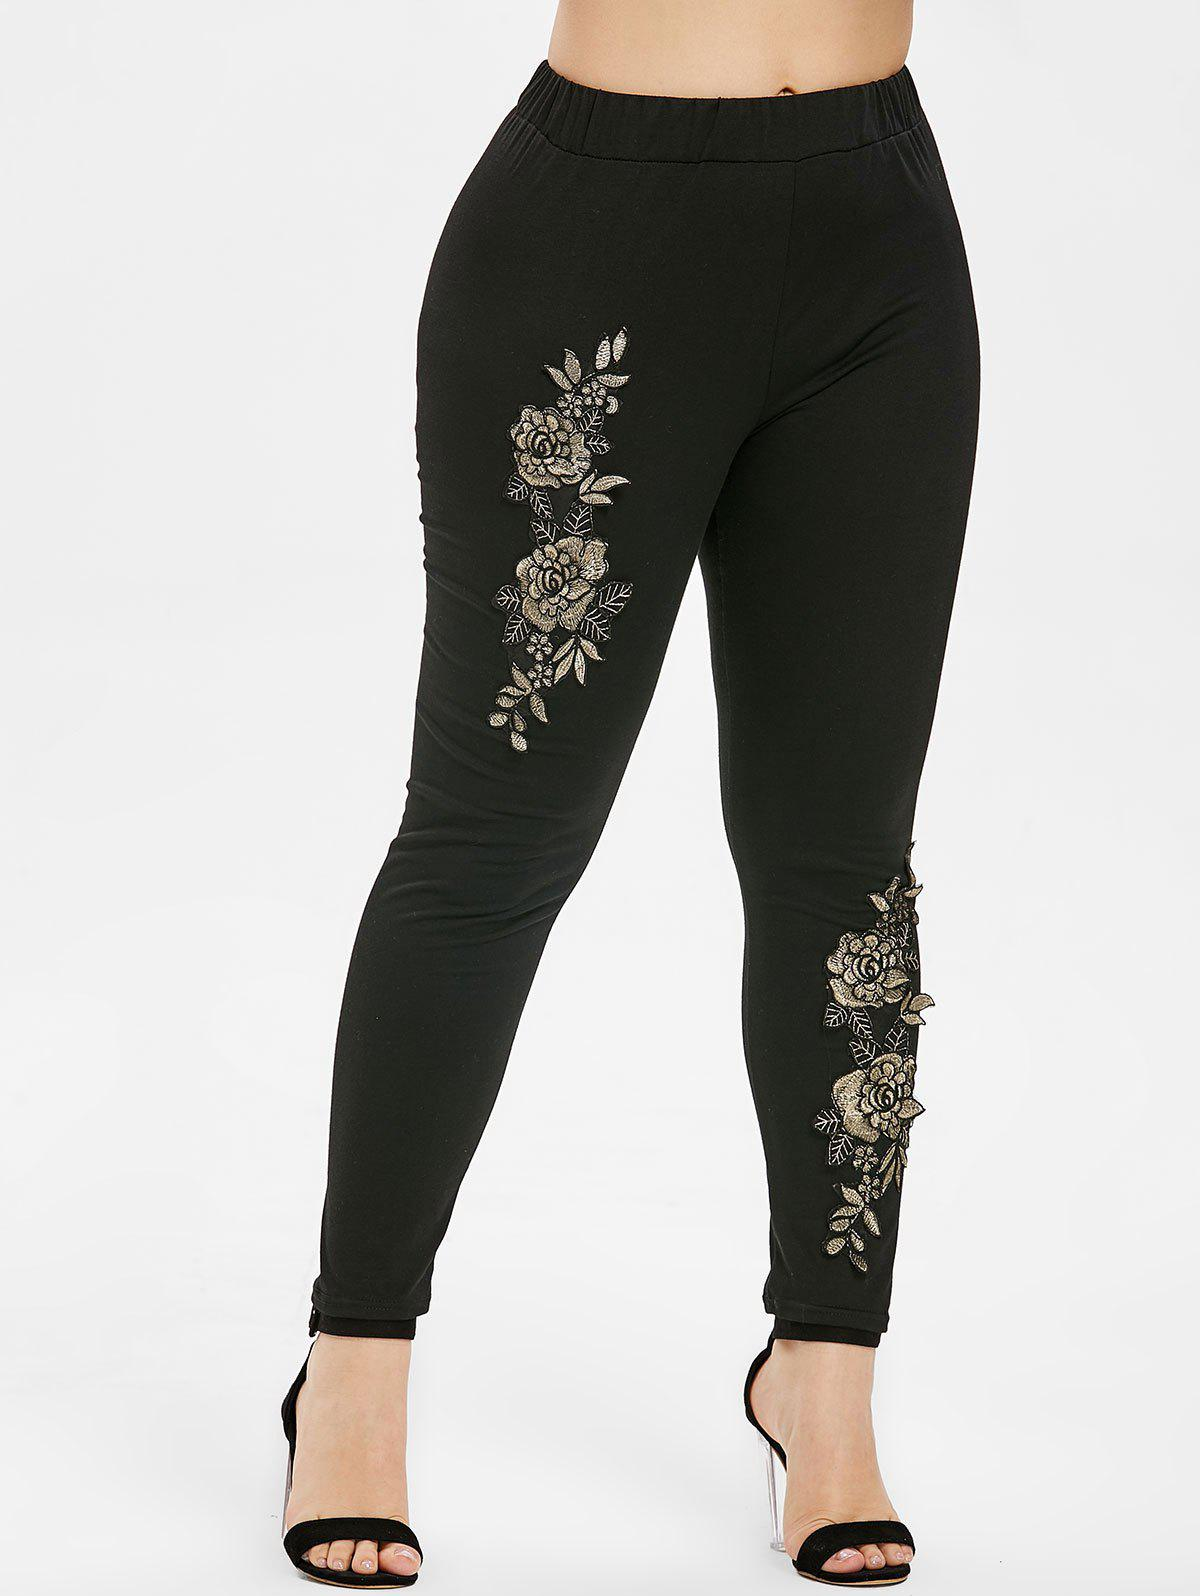 Buy Floral Embroidery Plus Size Elastic Waist Leggings